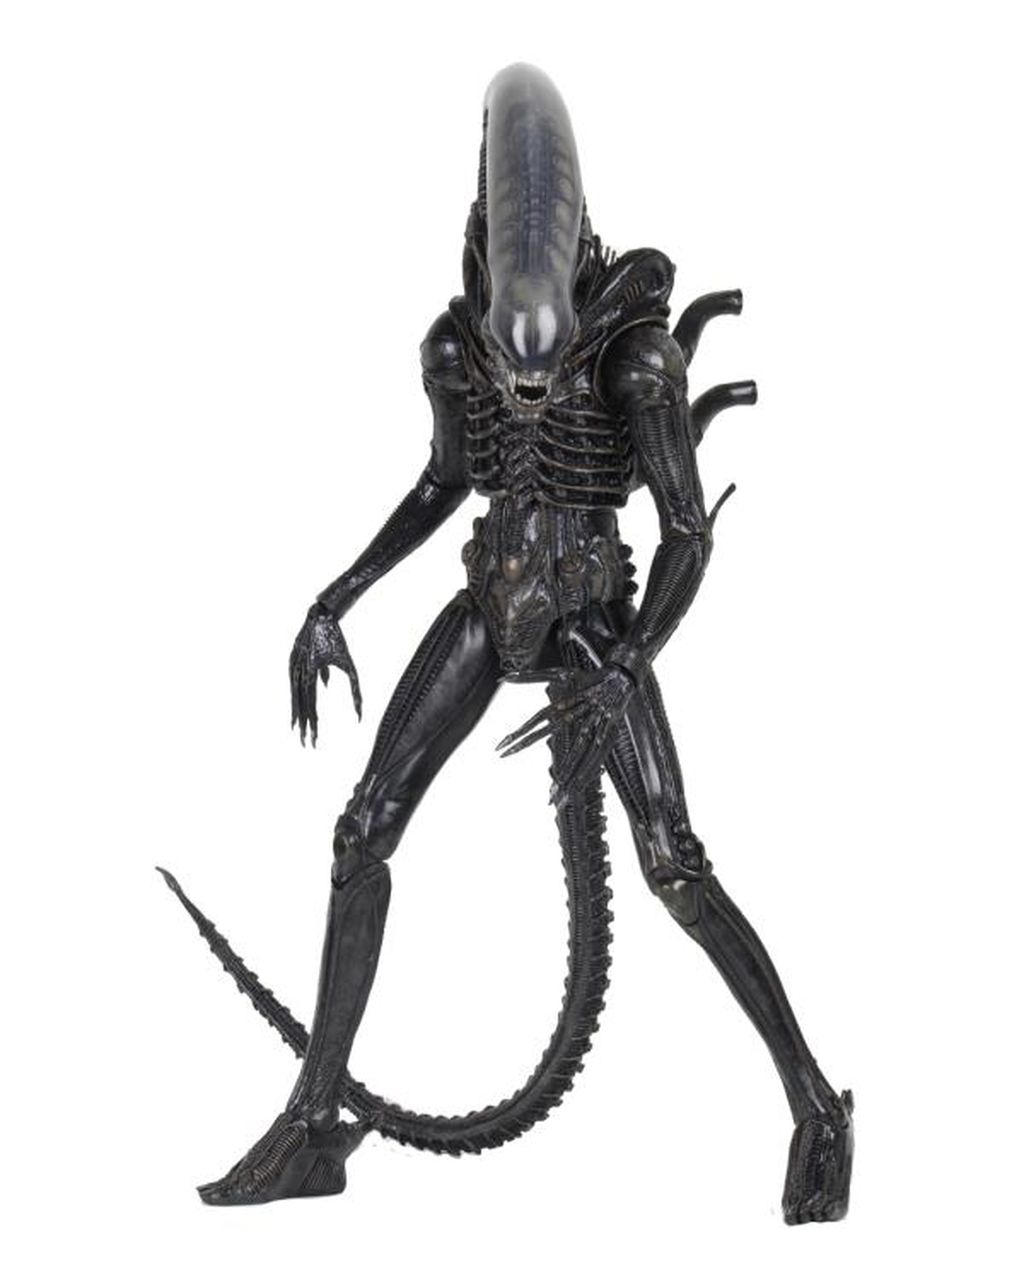 Action Figure Alien (Ultimate) 40th Anniversary Big Chap (Escala 1/4) - Neca (Apenas Venda Online)